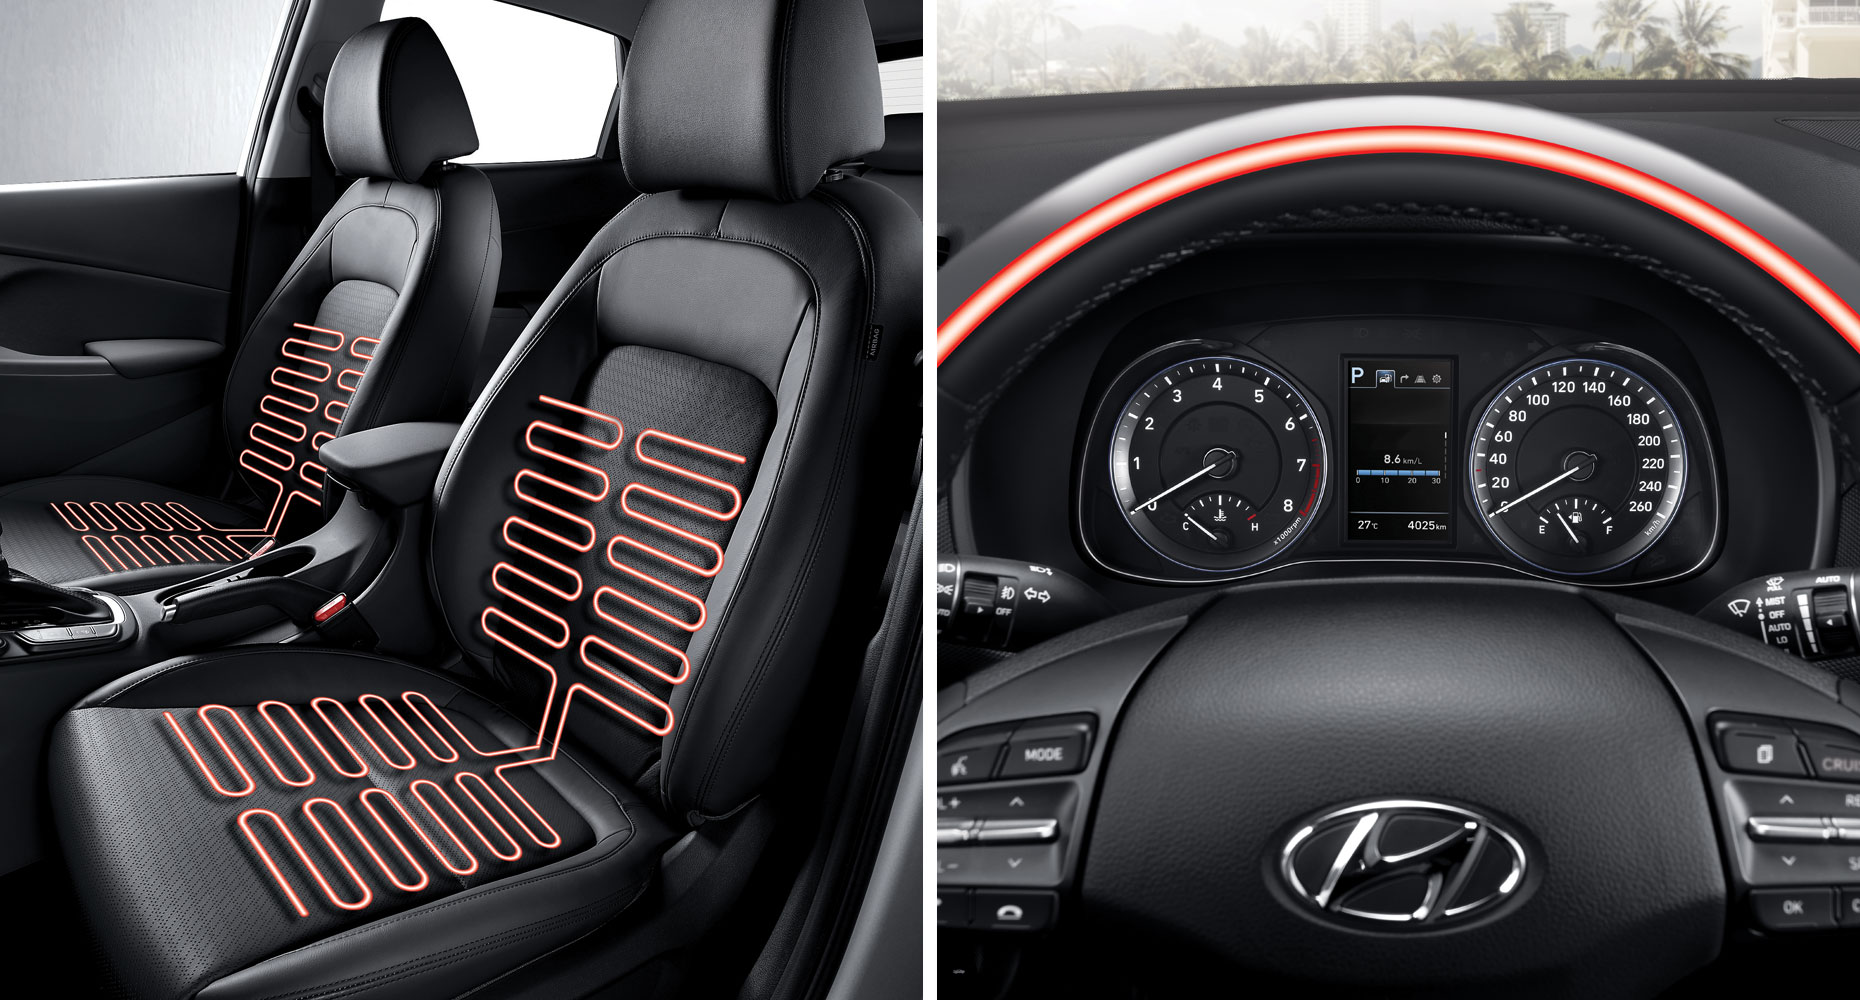 heated front seats and steering wheel. Black Bedroom Furniture Sets. Home Design Ideas